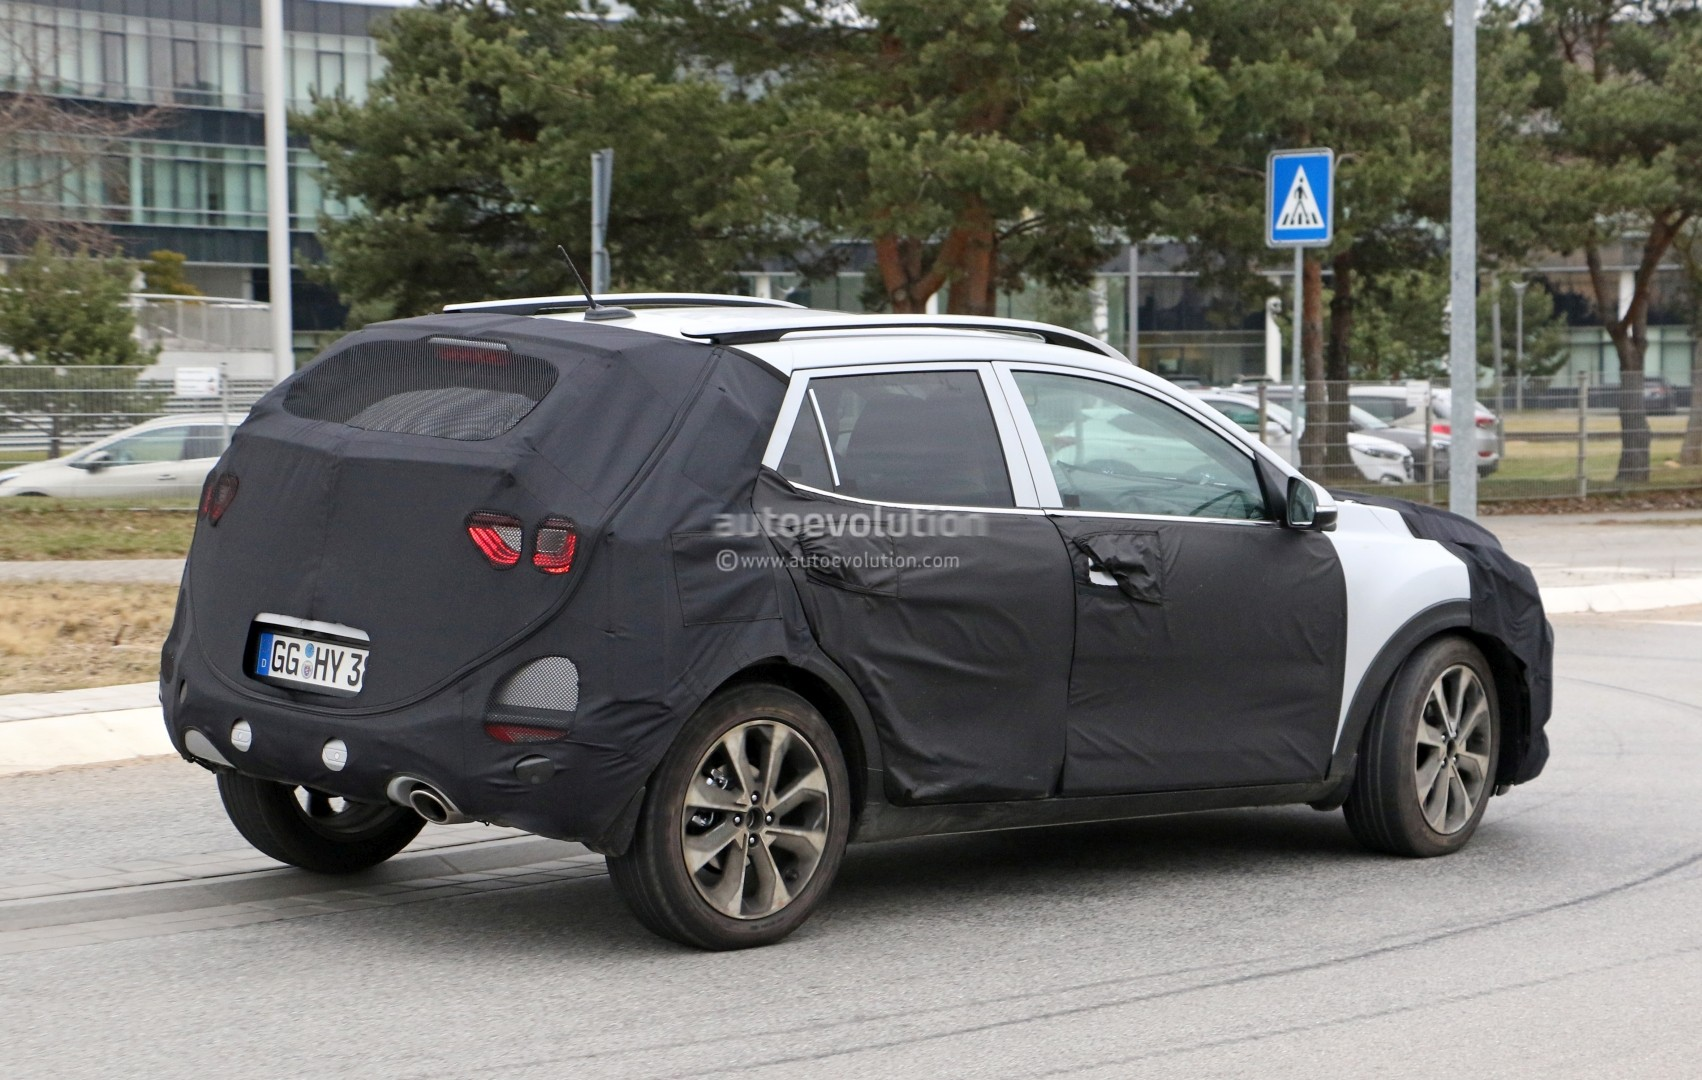 2017 - [Kia] Stonic 2018-kia-stonic-spied-up-close-in-germany-shows-sexy-production-lights_8